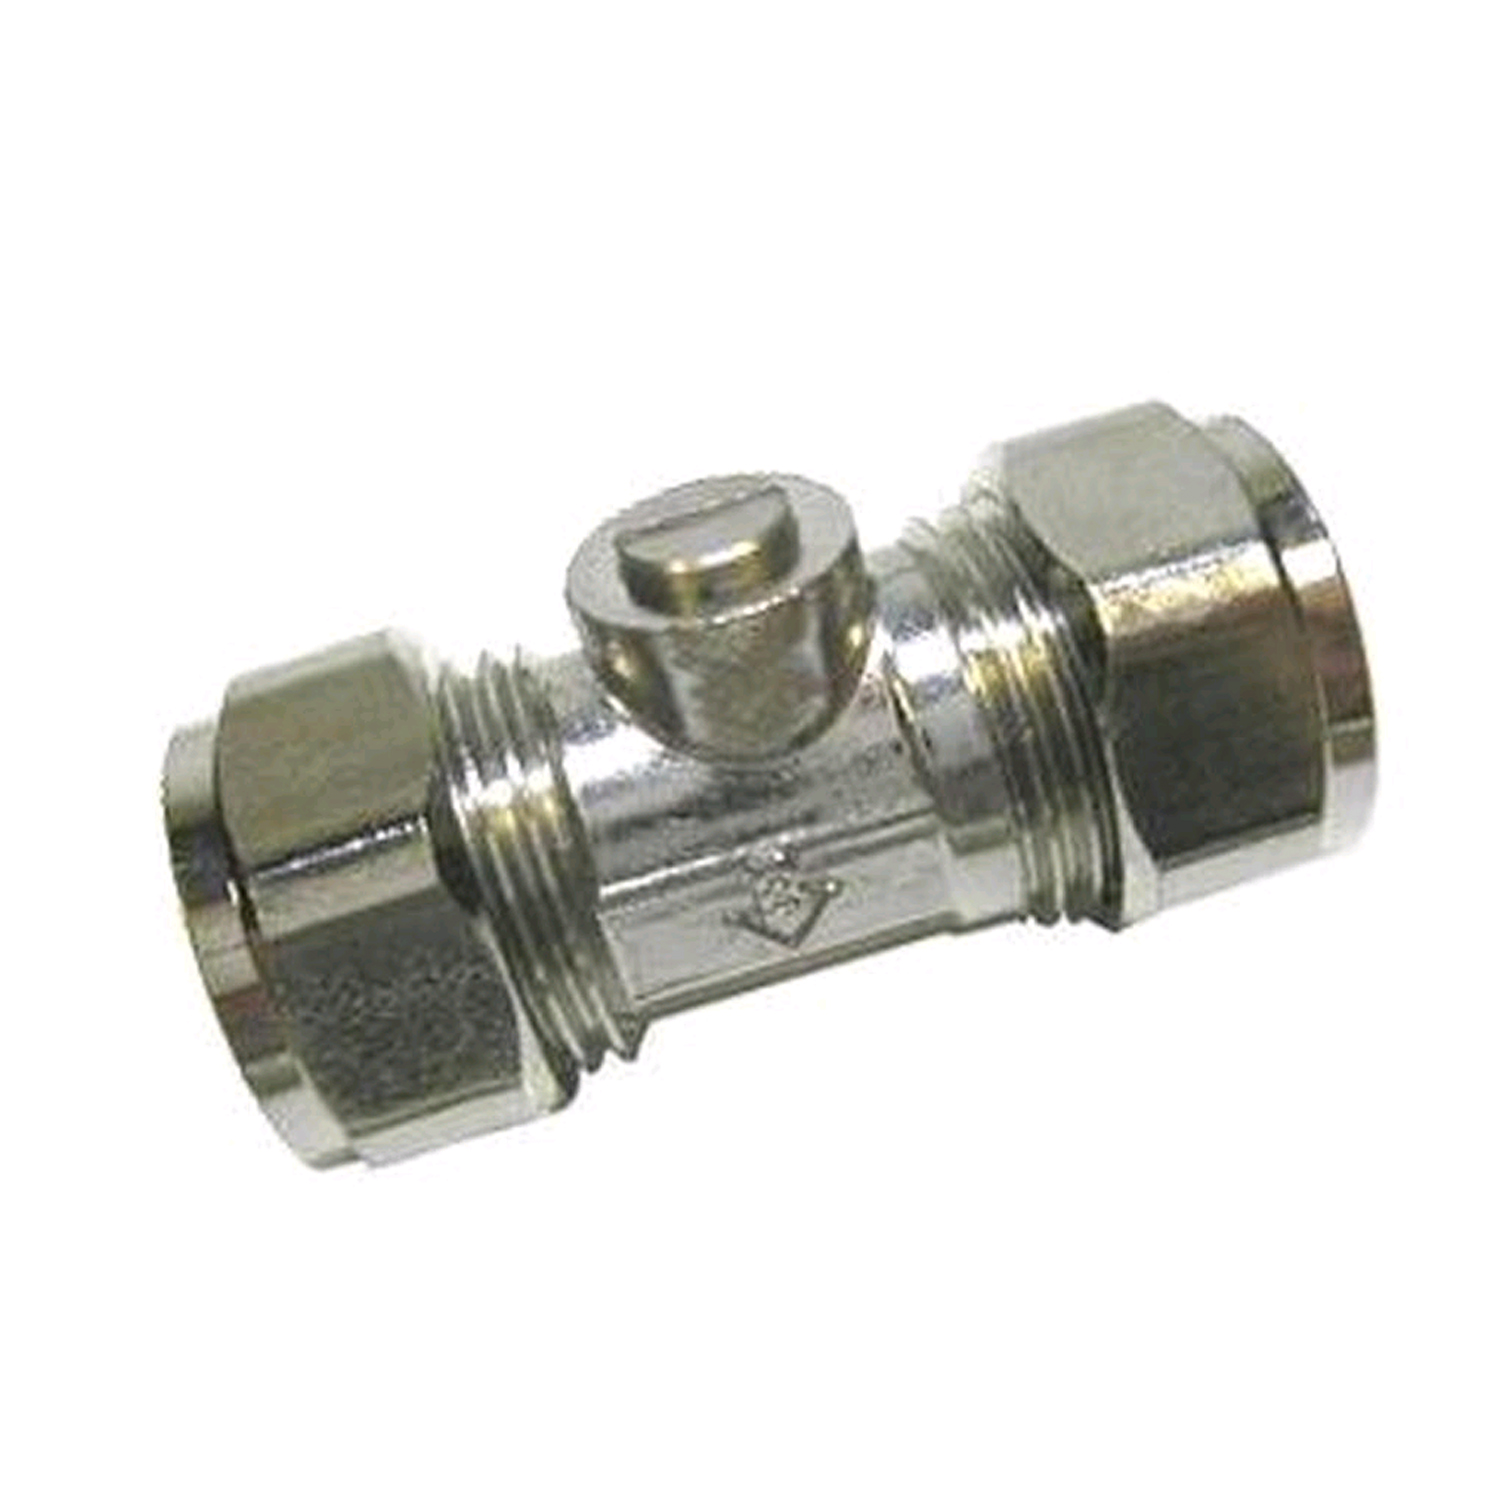 15MM LIGHT PATTERN ISOLATION VALVE - CHROME PLATED